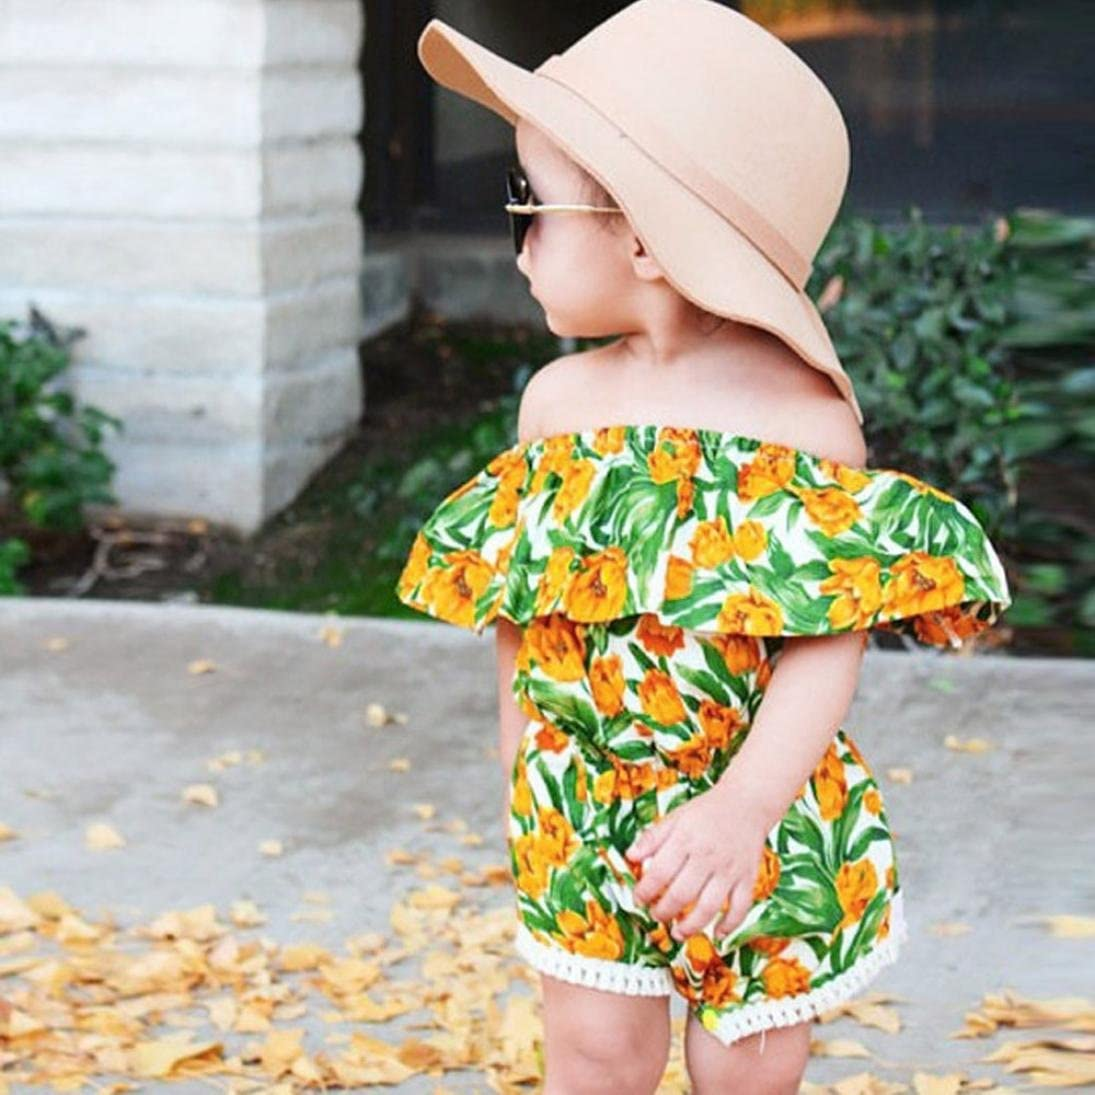 Toraway Toddler Infant Baby Girl Floral Printed Off Shoulder Romper Jumpsuit Outfits Sunsuit Clothes